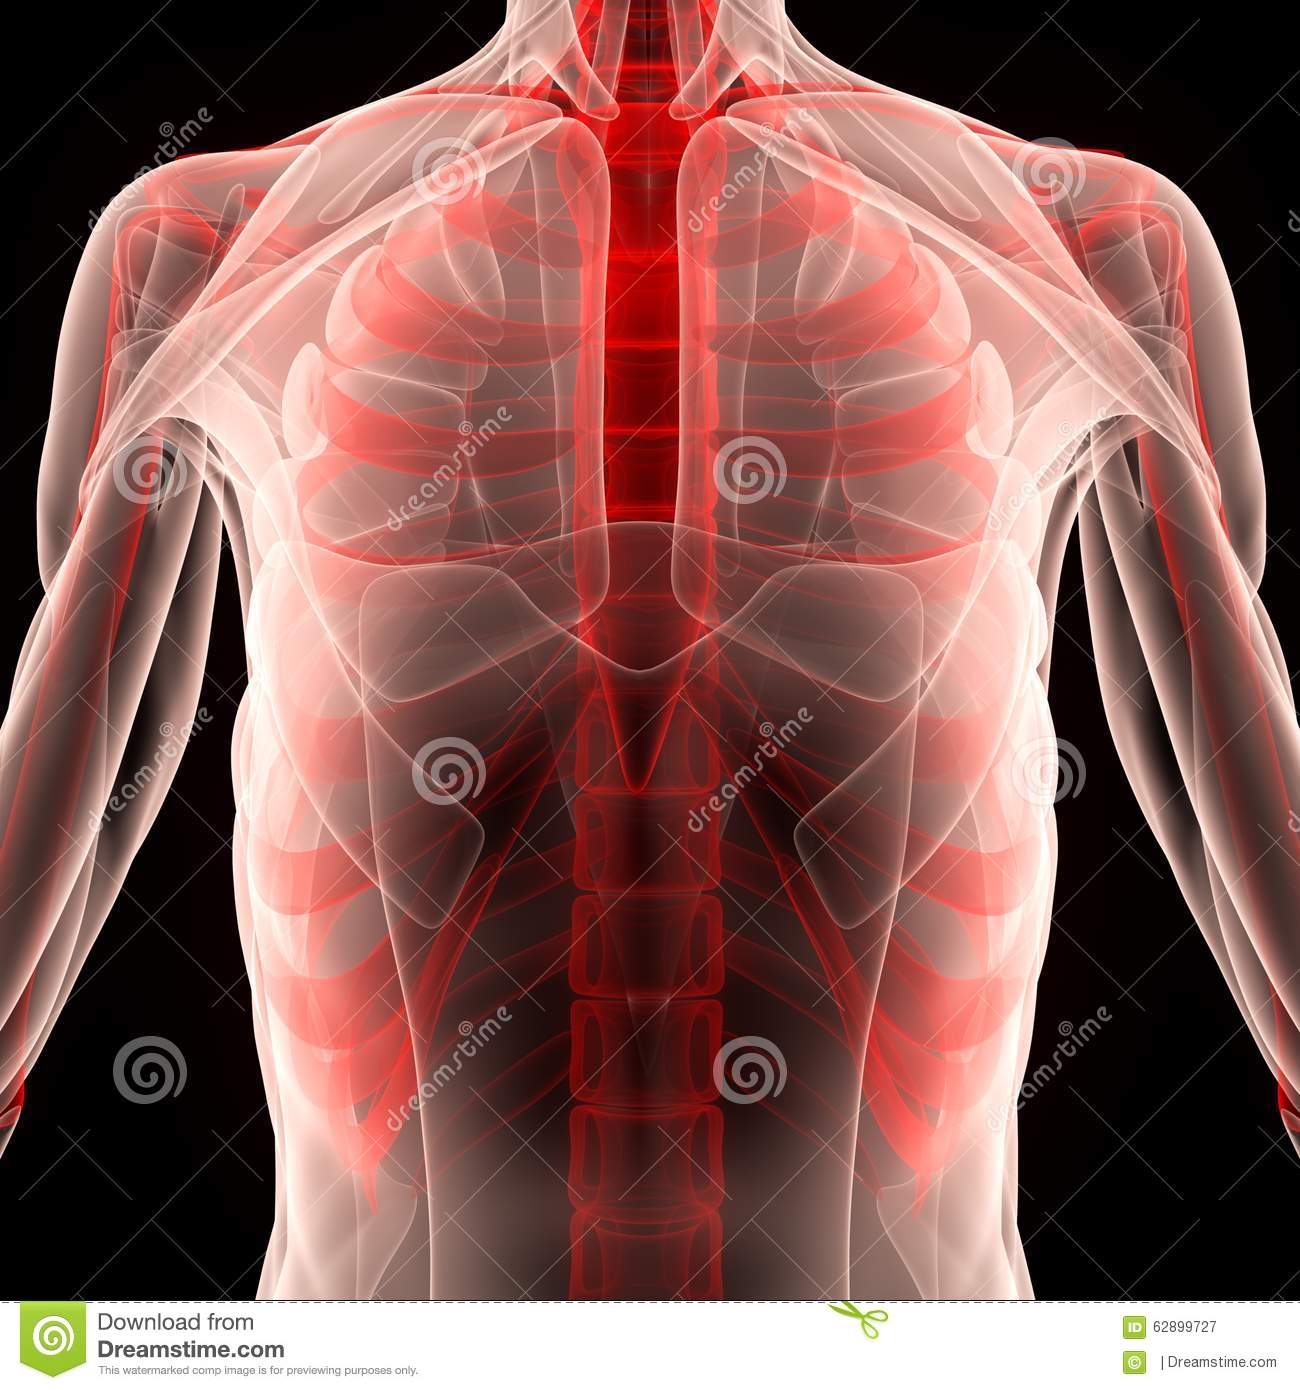 Human Muscle Body With Ribs Stock Illustration - Illustration of ...